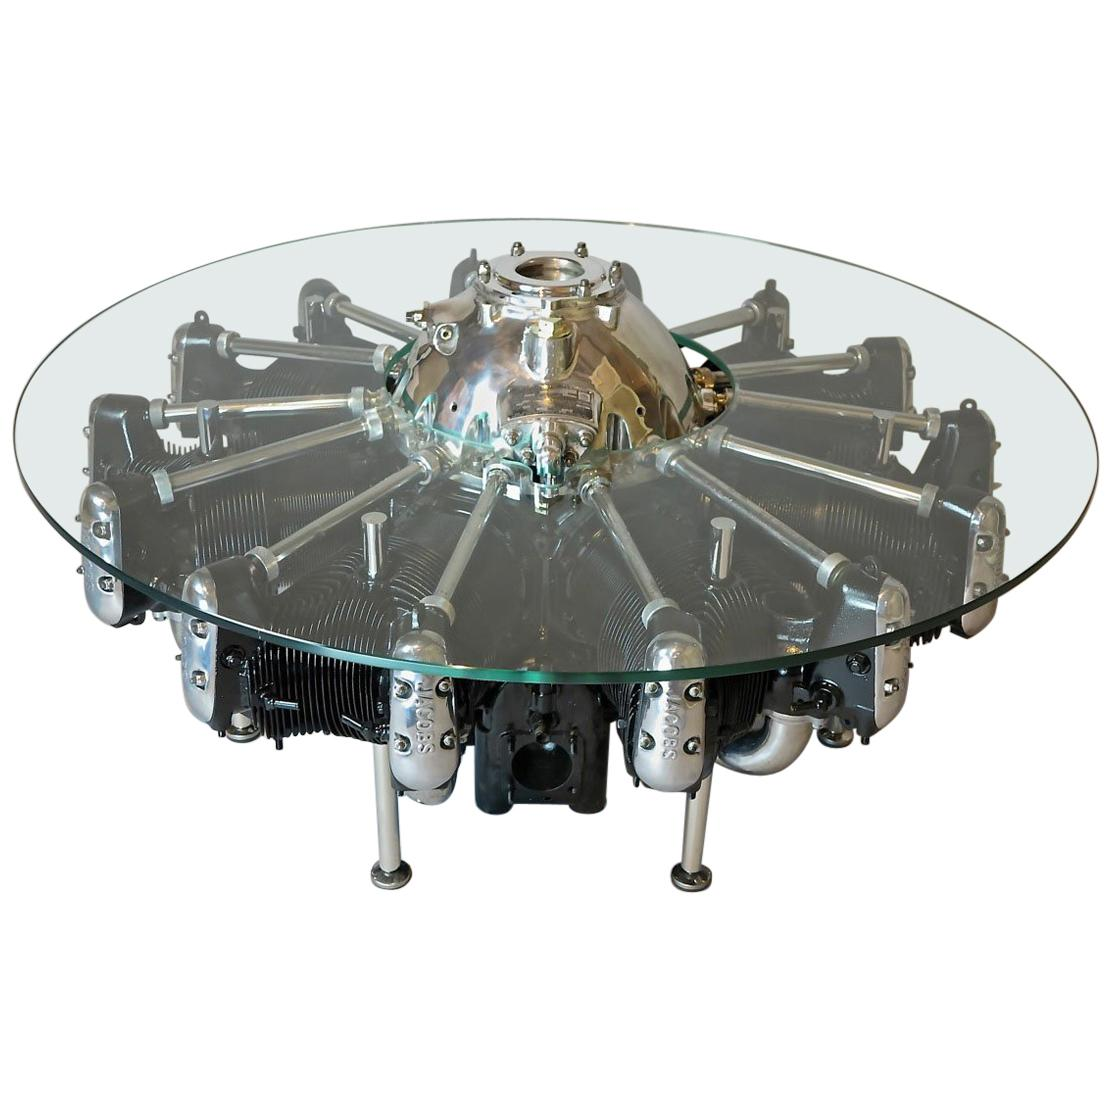 Lycoming R680 9 Cylinder Radial Engine Table, USA, circa 1936-1938